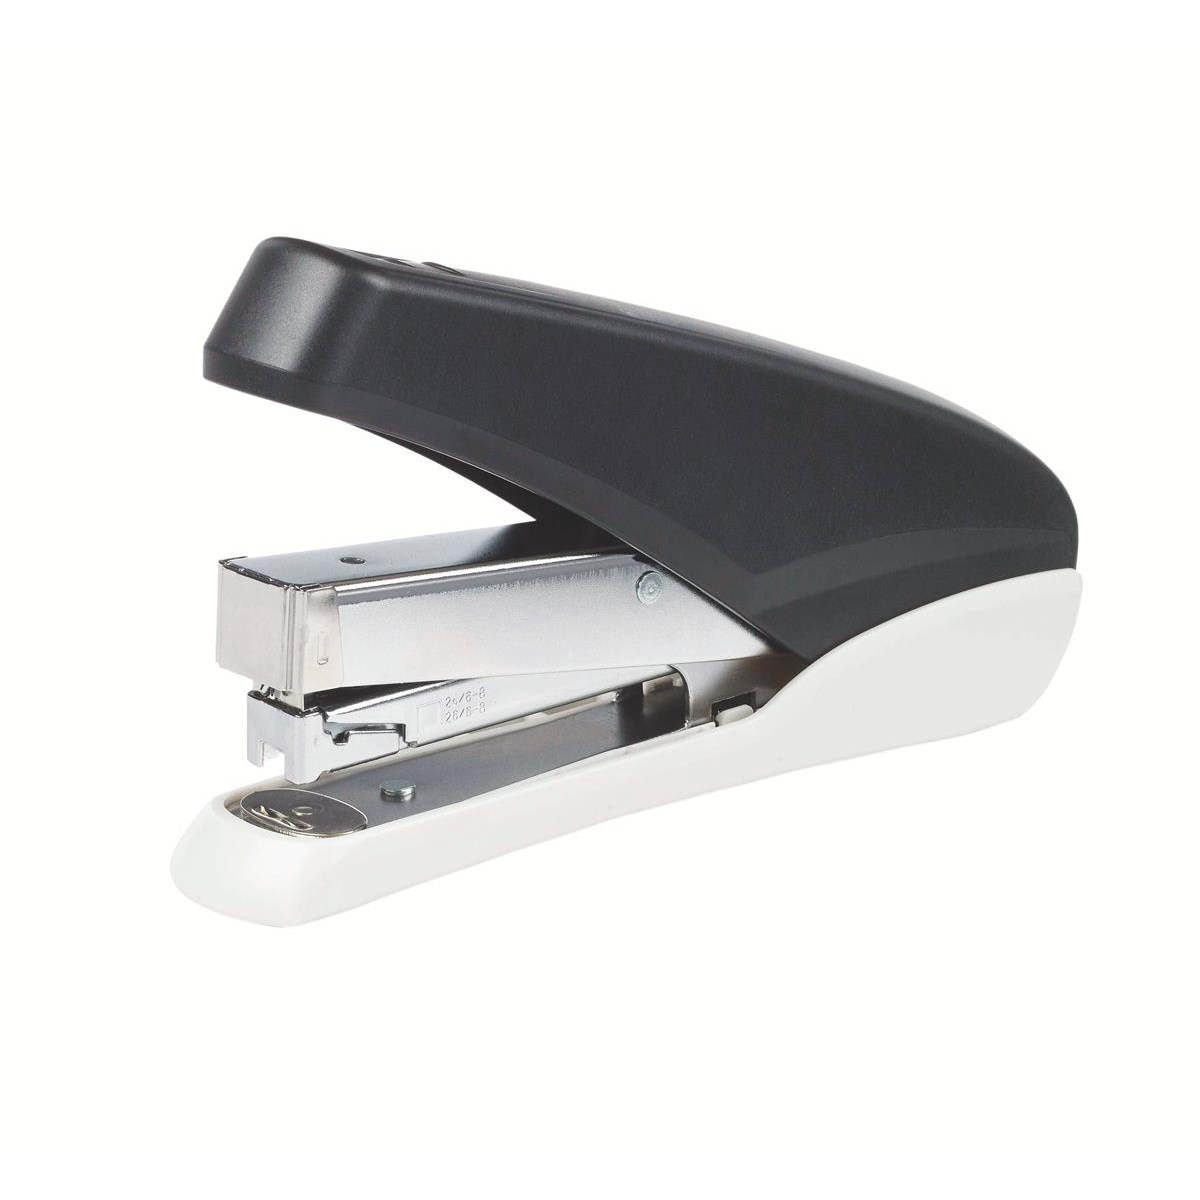 Long Arm Staplers 5 Star Office Power-Save Full Strip Stapler 40 Sheet Capacity Takes 26/6 Staples Black/Grey